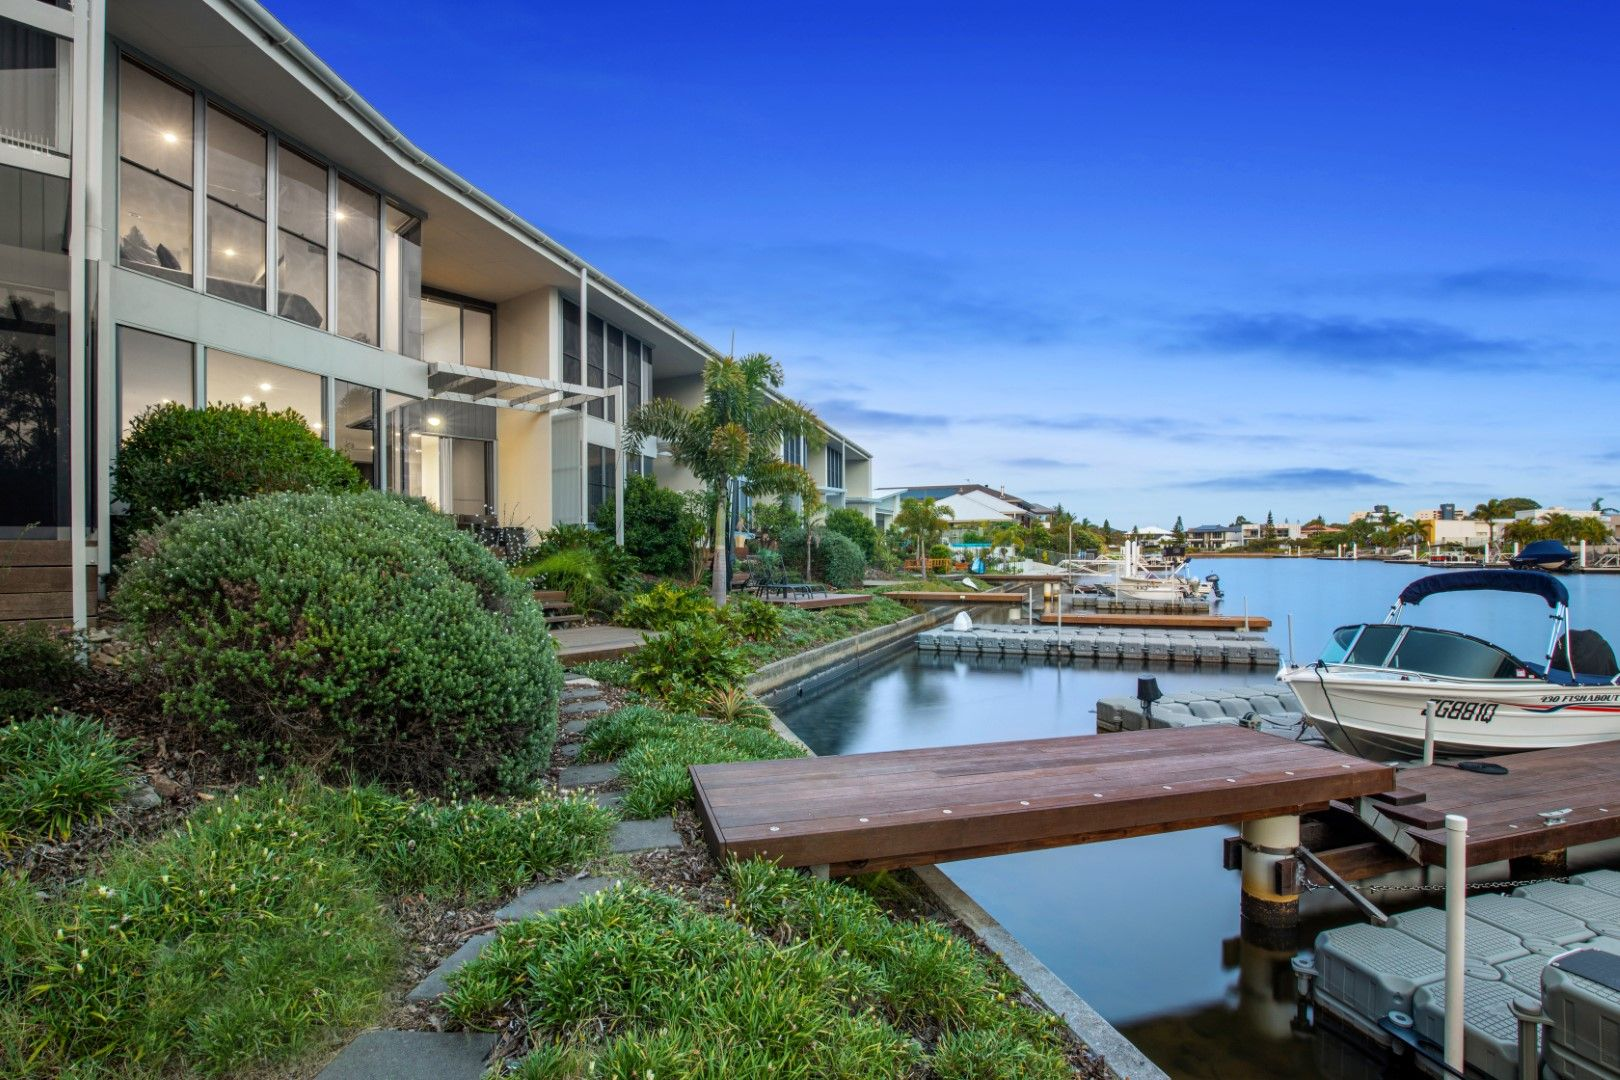 5/65 Whitehaven Way, Pelican Waters QLD 4551, Image 0